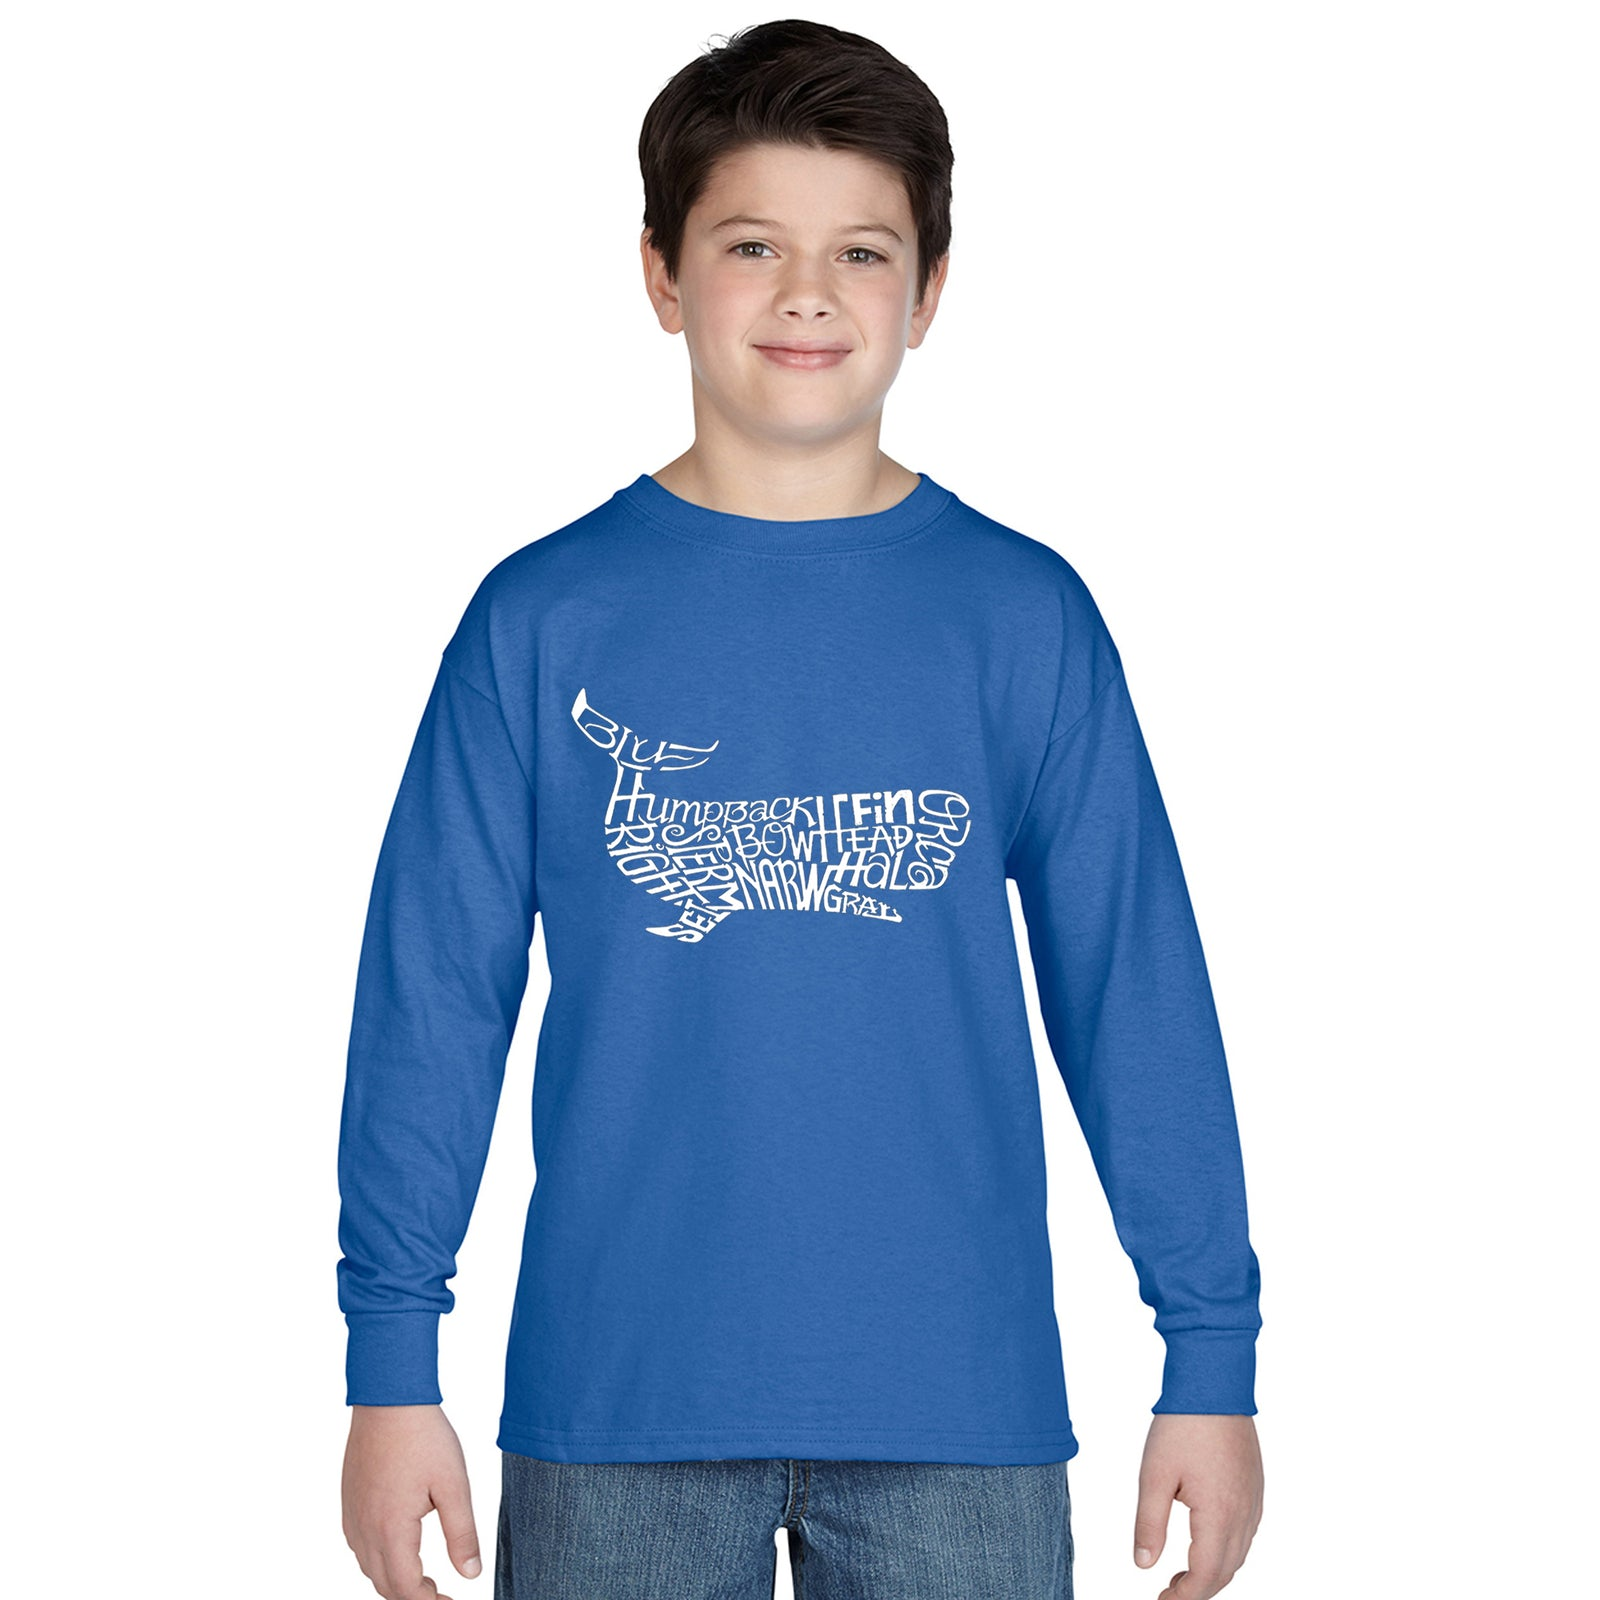 Boy's Word Art Long Sleeve - Humpbk